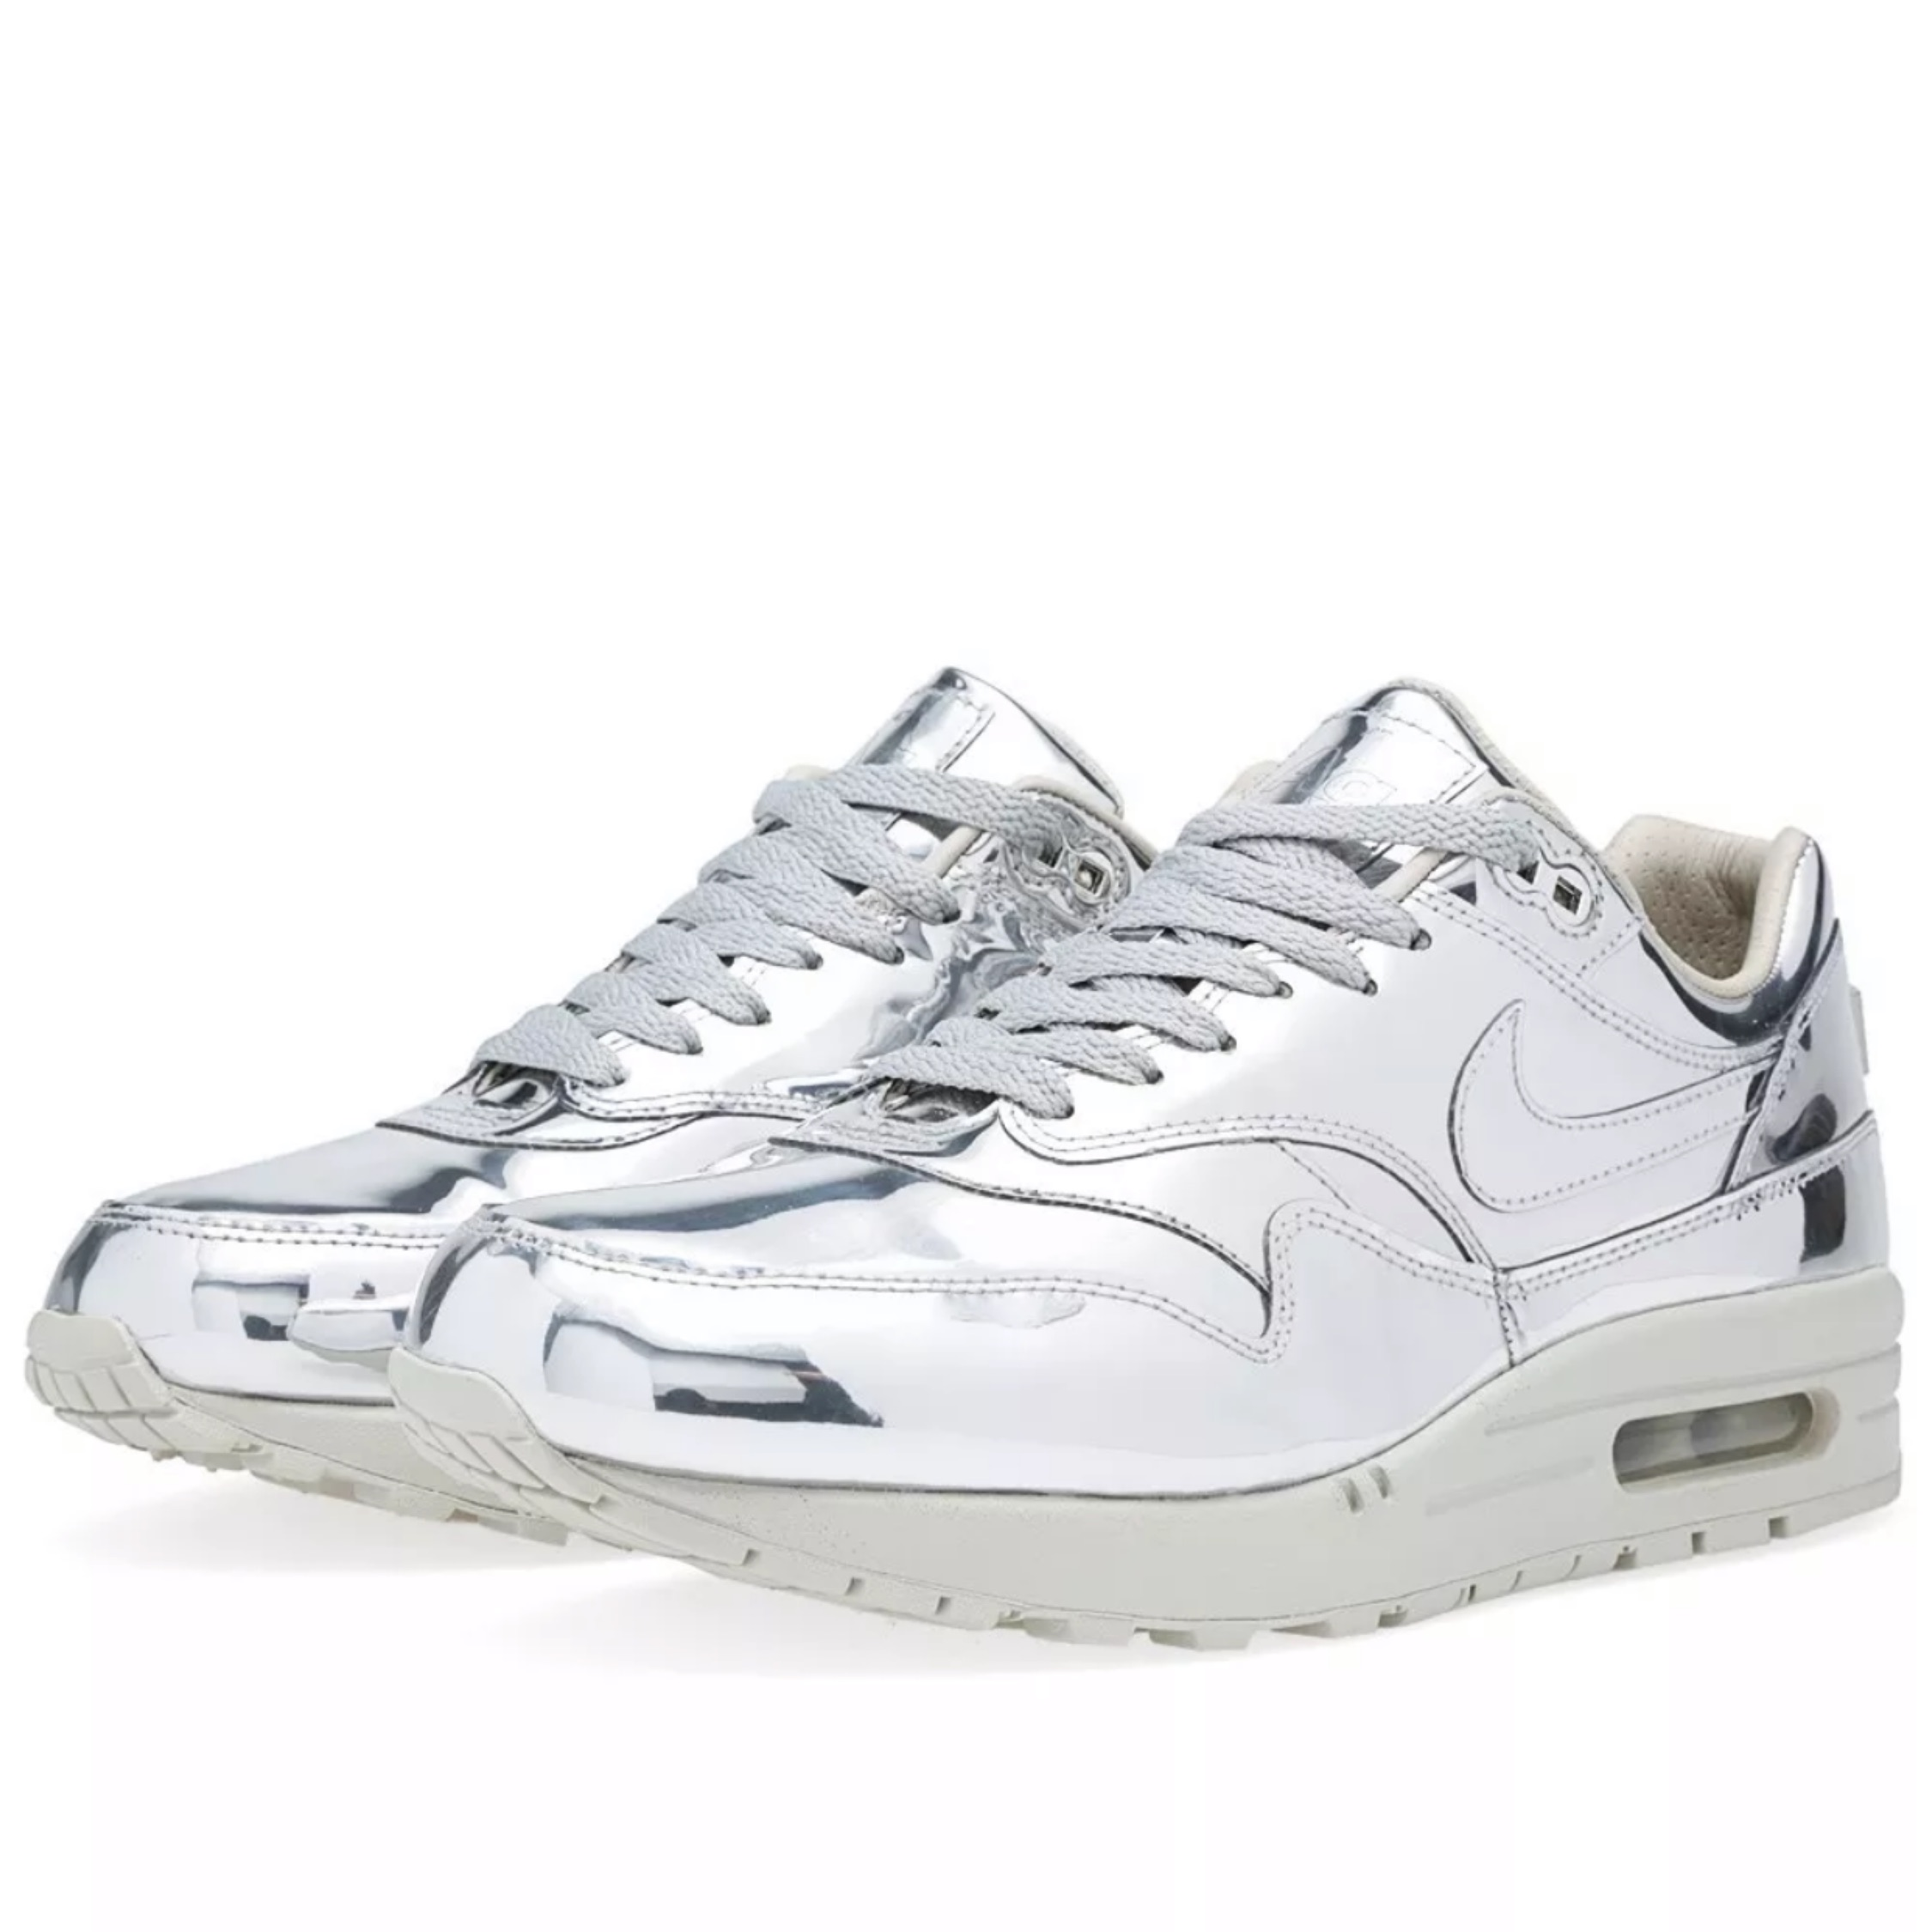 Nike Air Max 1 SP Liquid Metal Silver | Shophousingworks